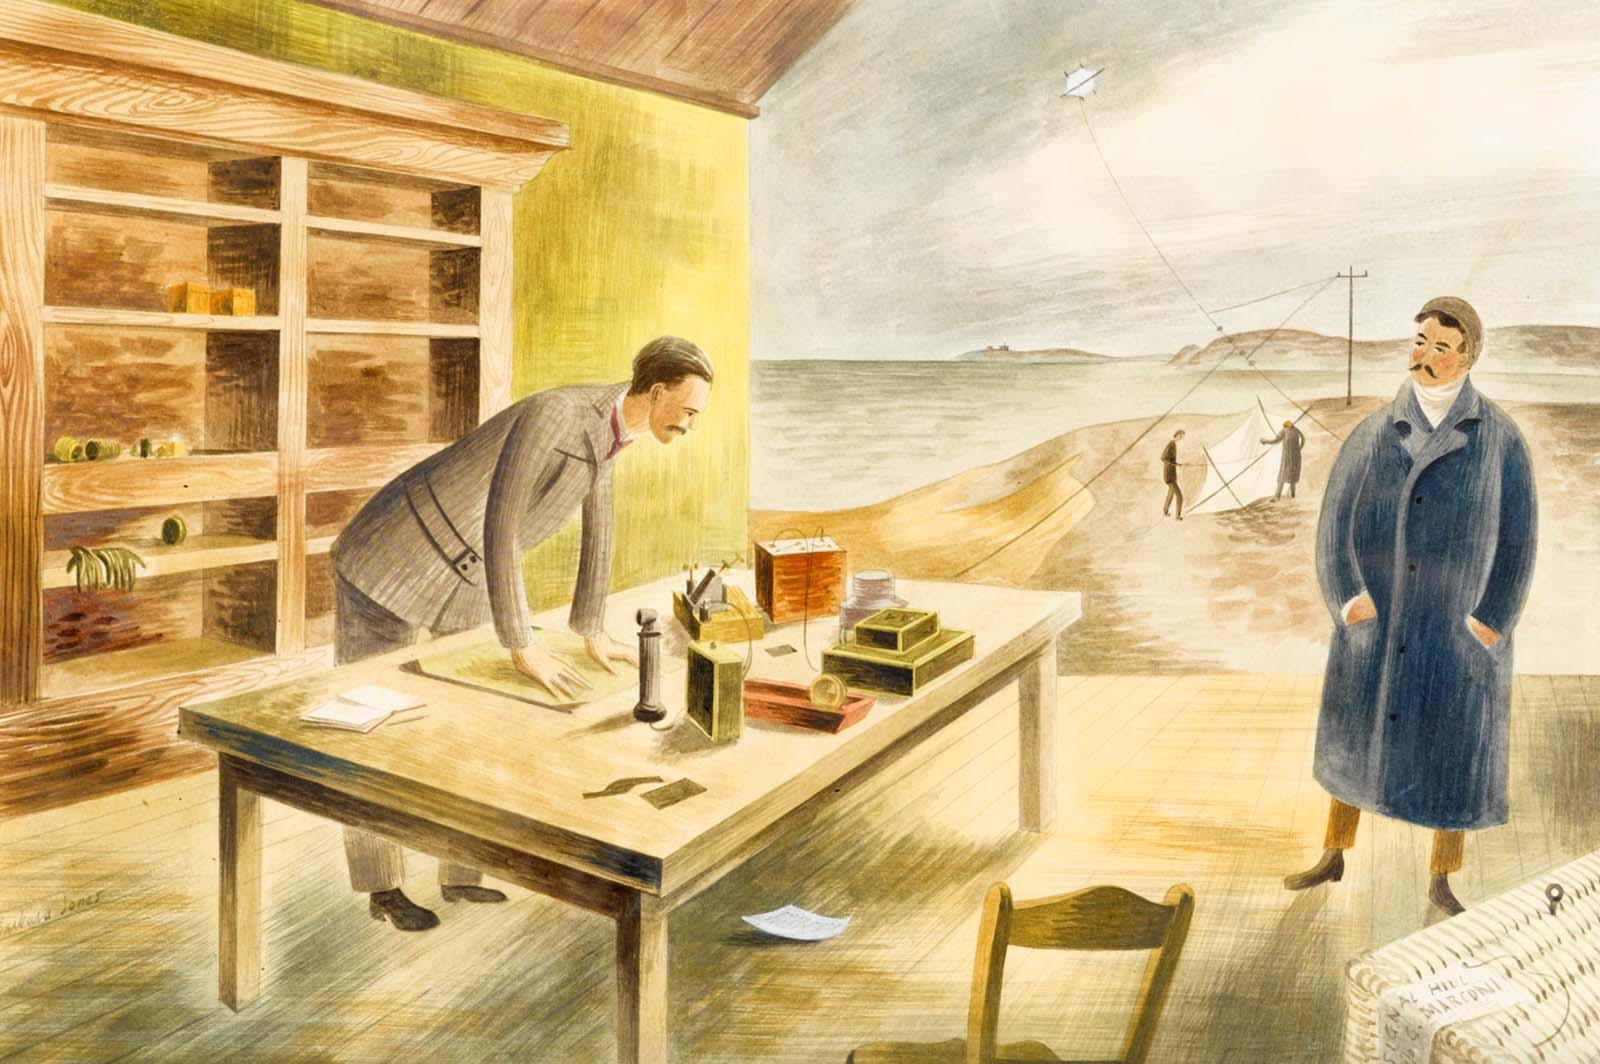 watercolour painting of two men elaning across a table in a open porchway with a coastal cliff landscape stretching out beyond them